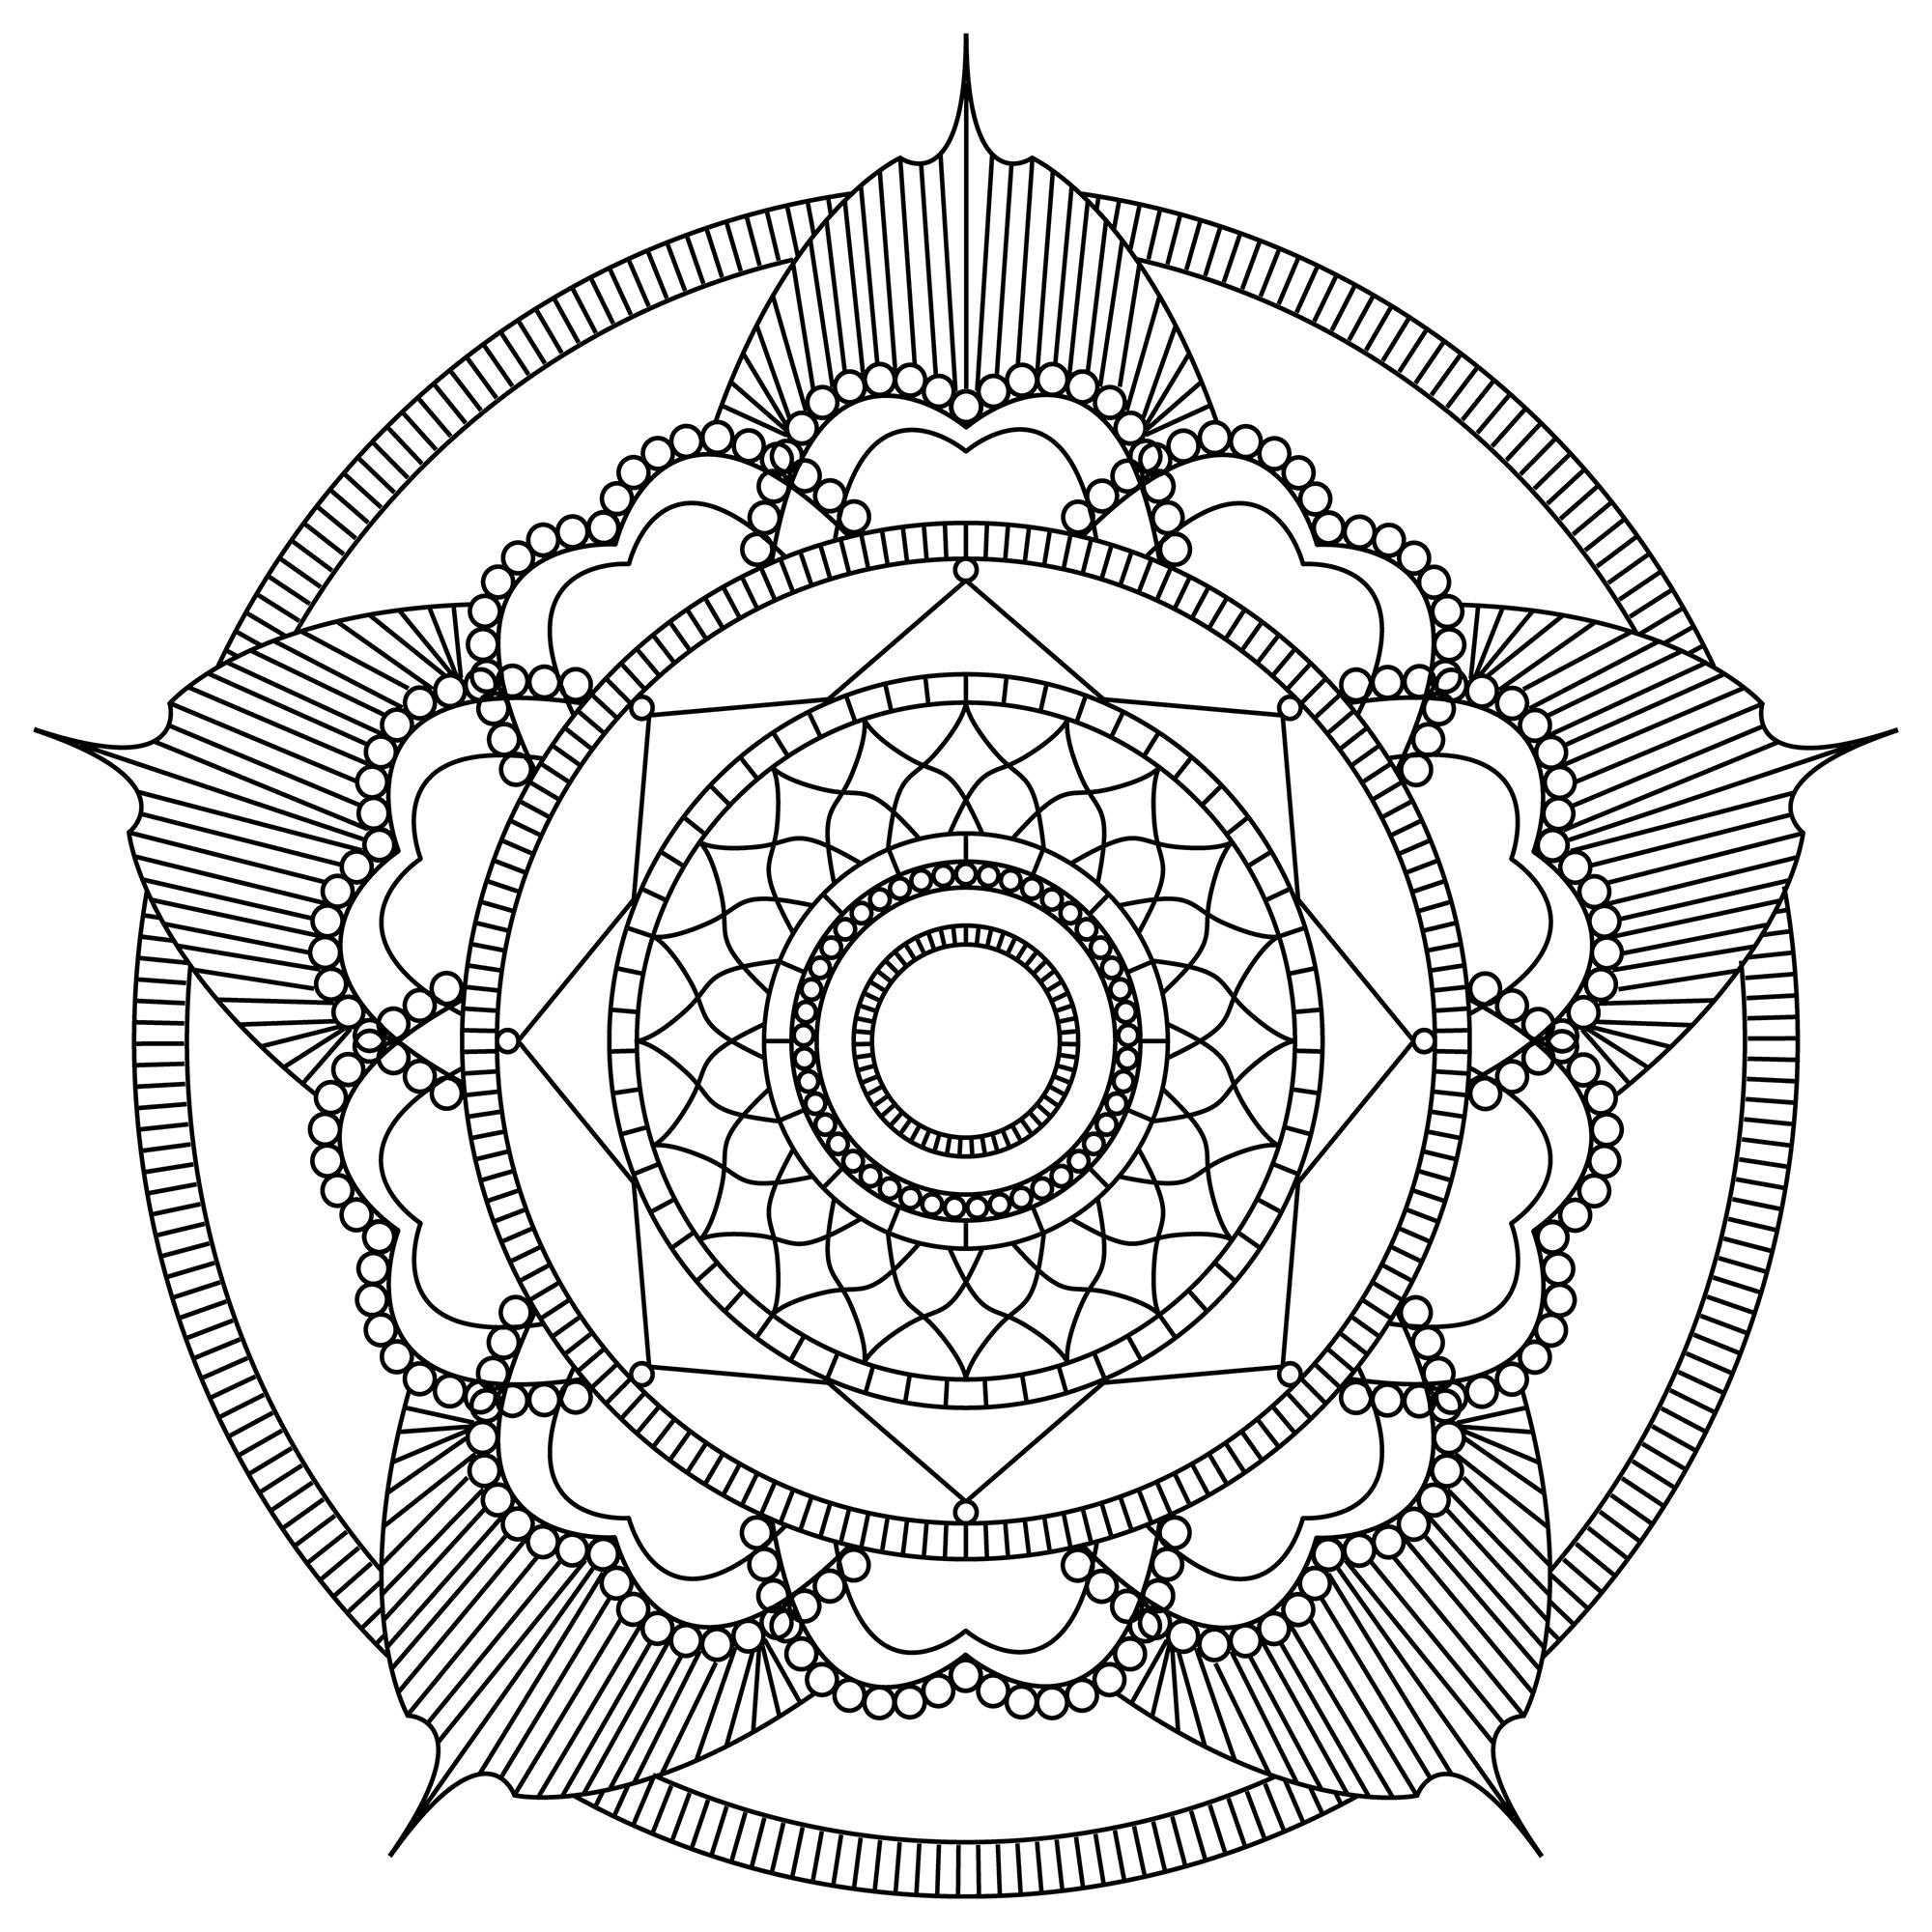 simple mandalas to color free mandala mpc design 8 simple mandalas 100 mandalas simple color to